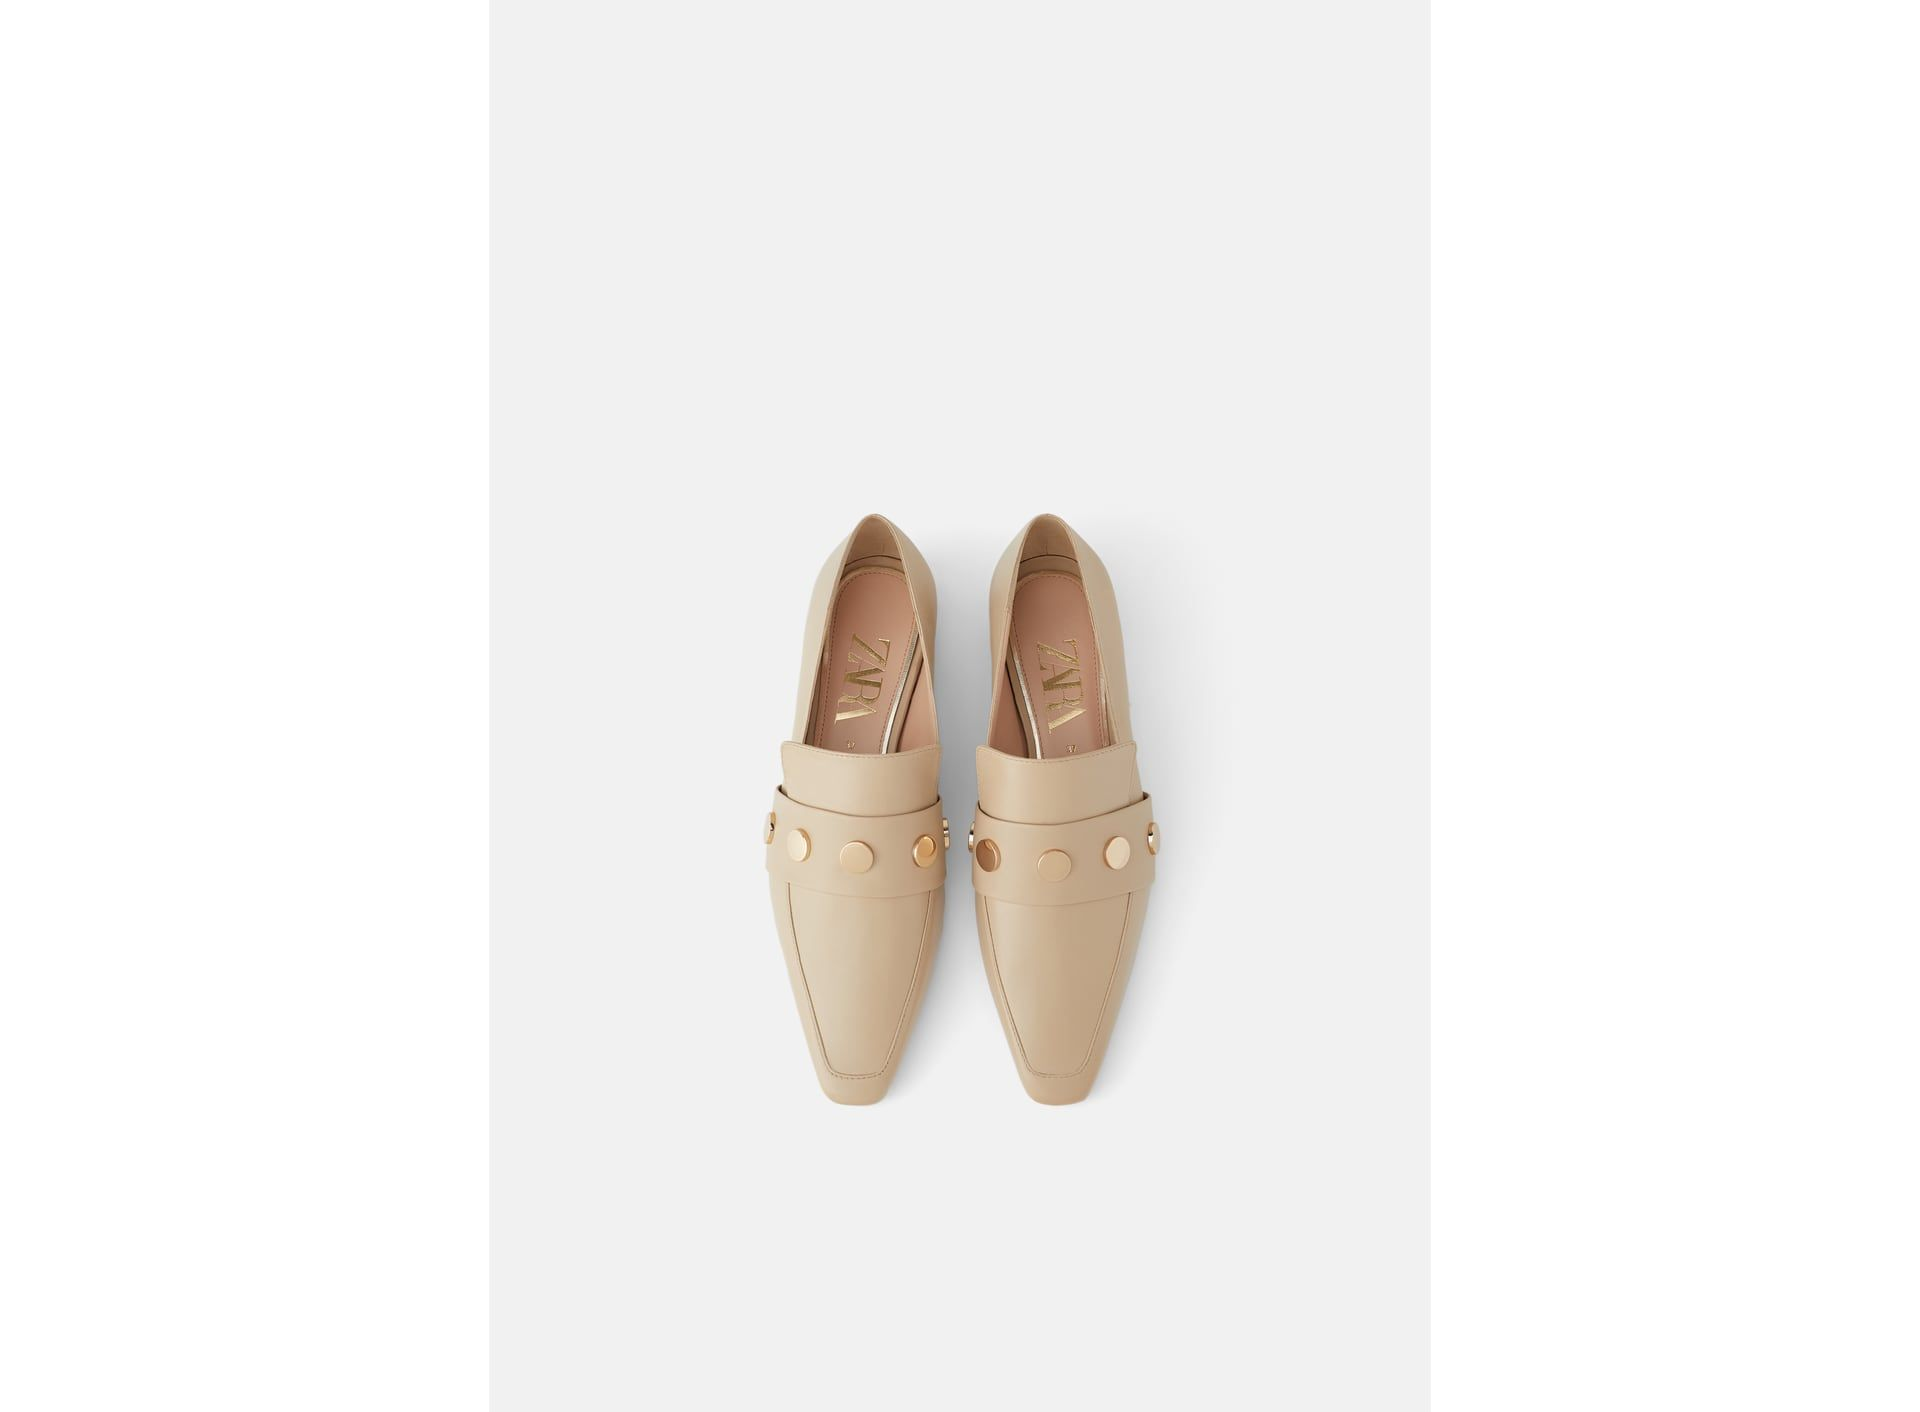 5672bb990b29 Women's Flat Shoes | New Collection Online | ZARA United States ...